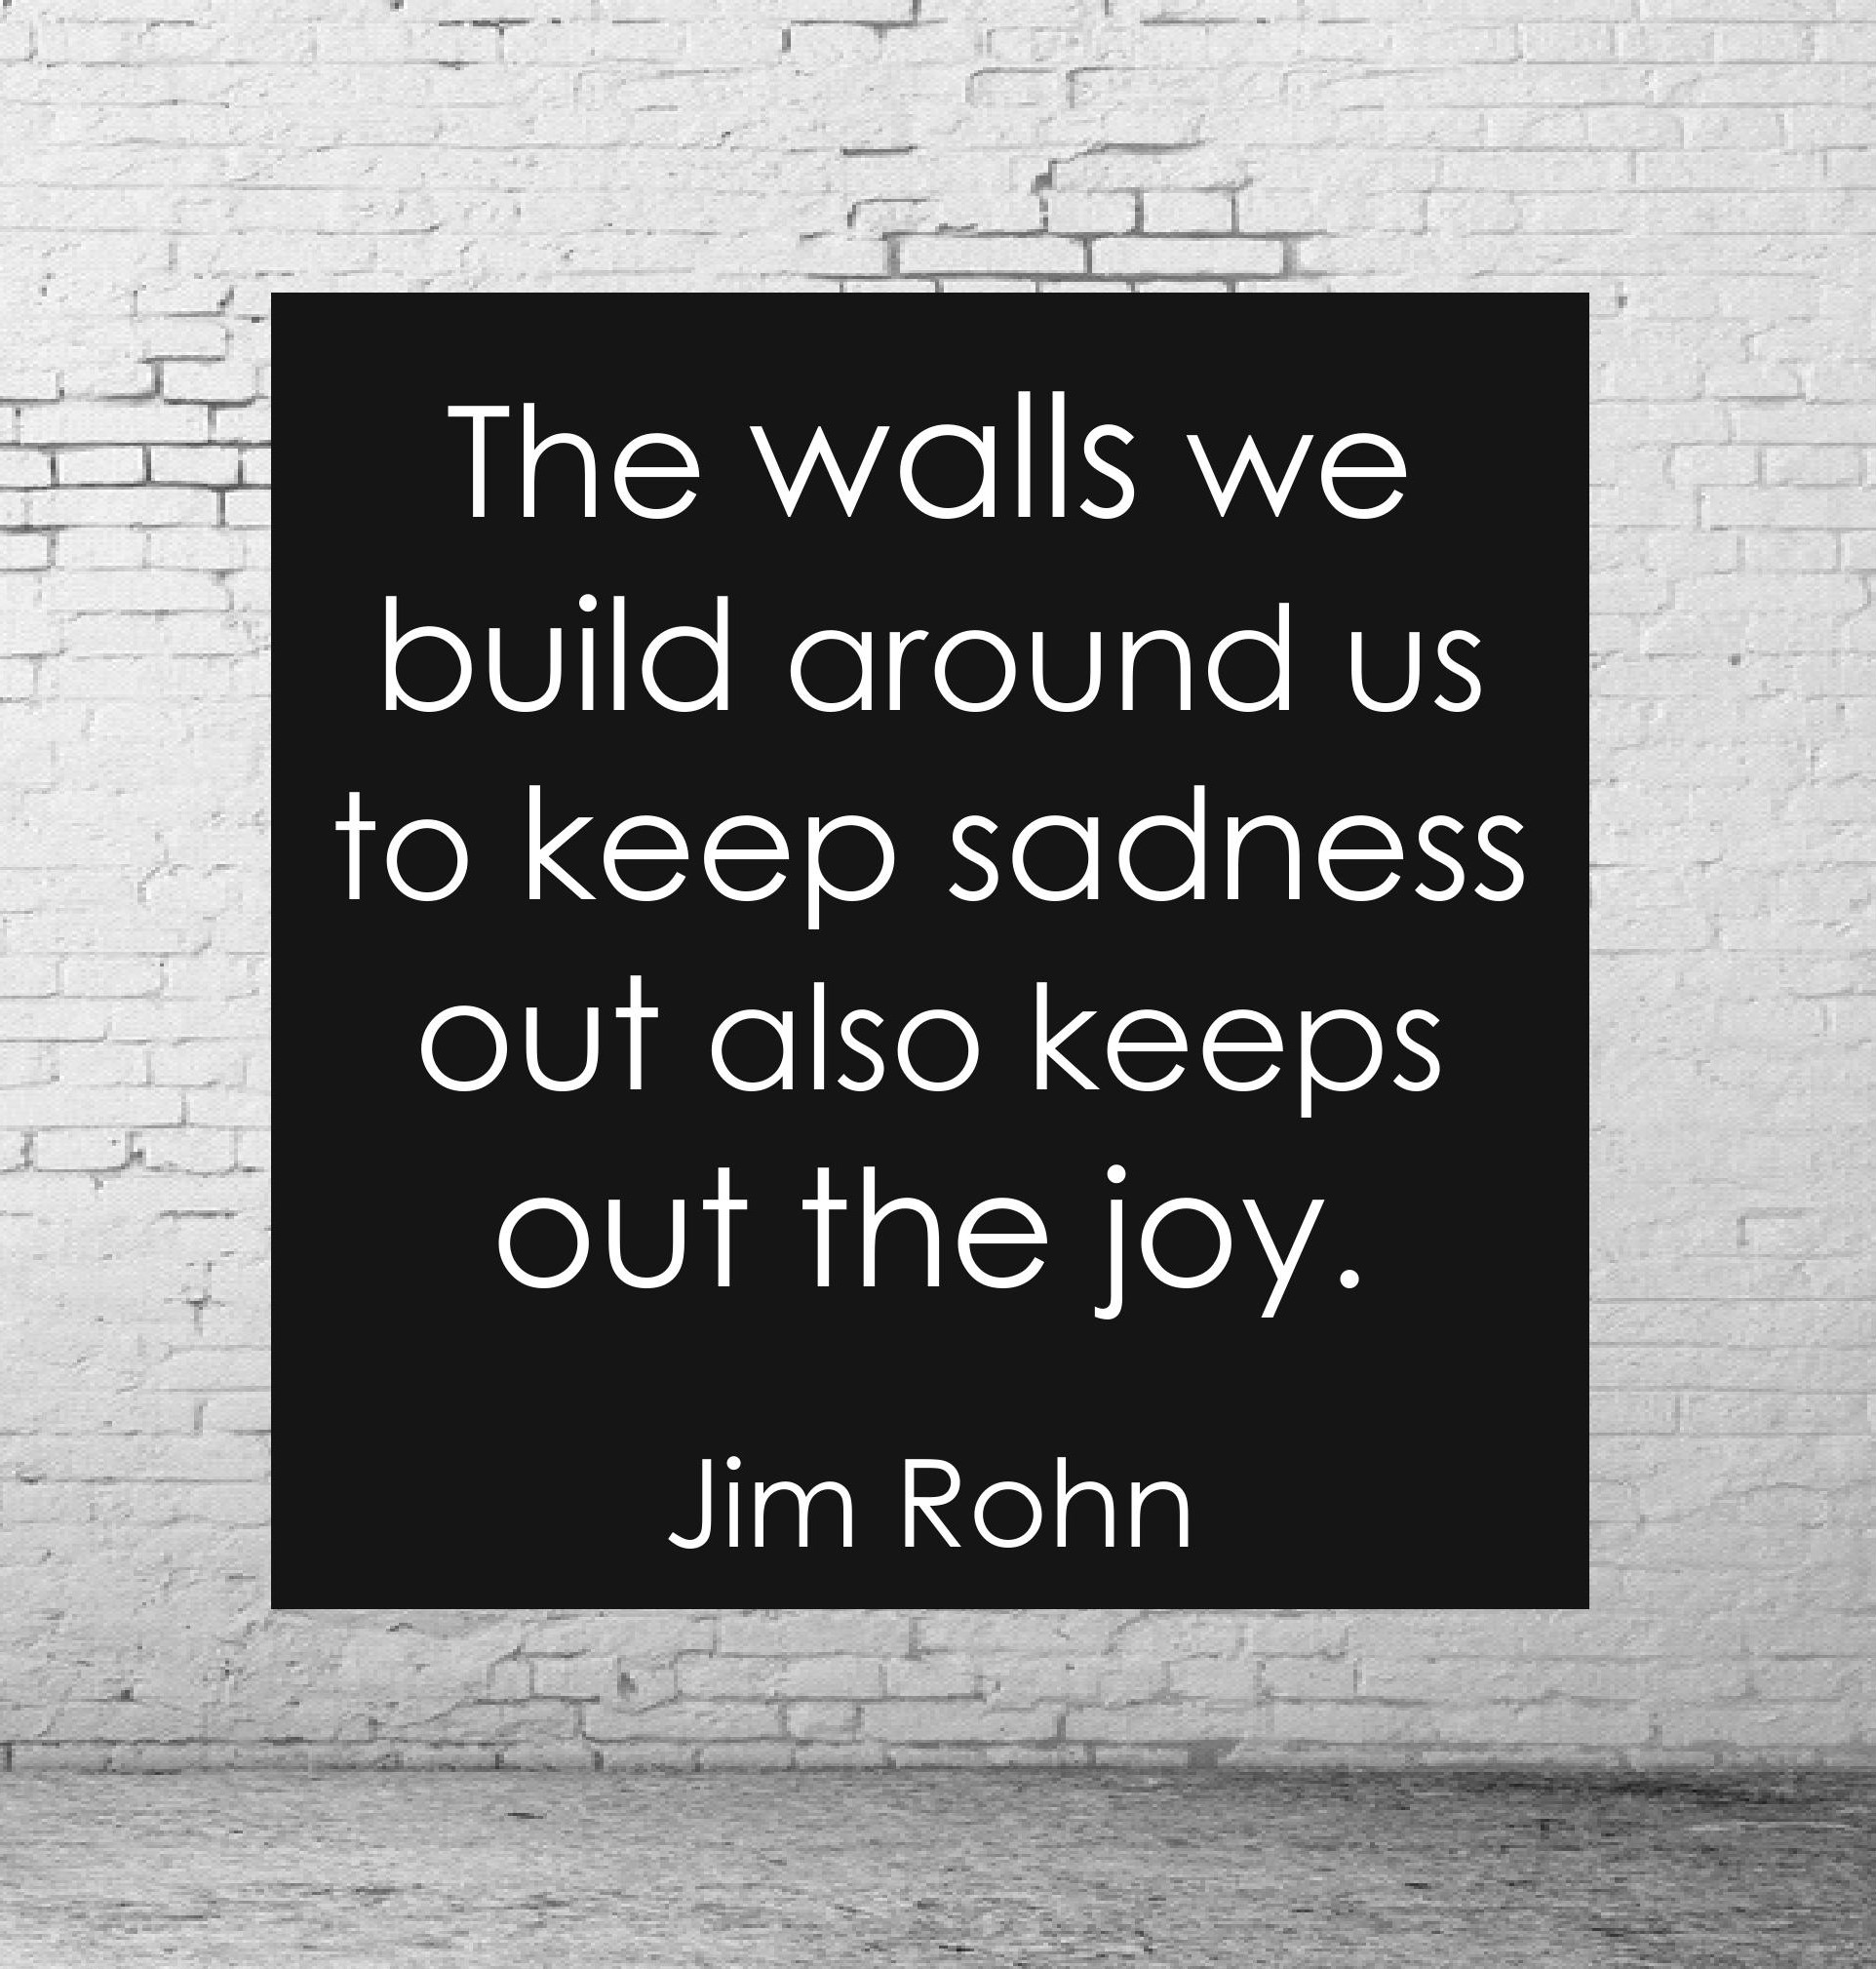 The walls we build around us to keep sadness out also keeps out the joy